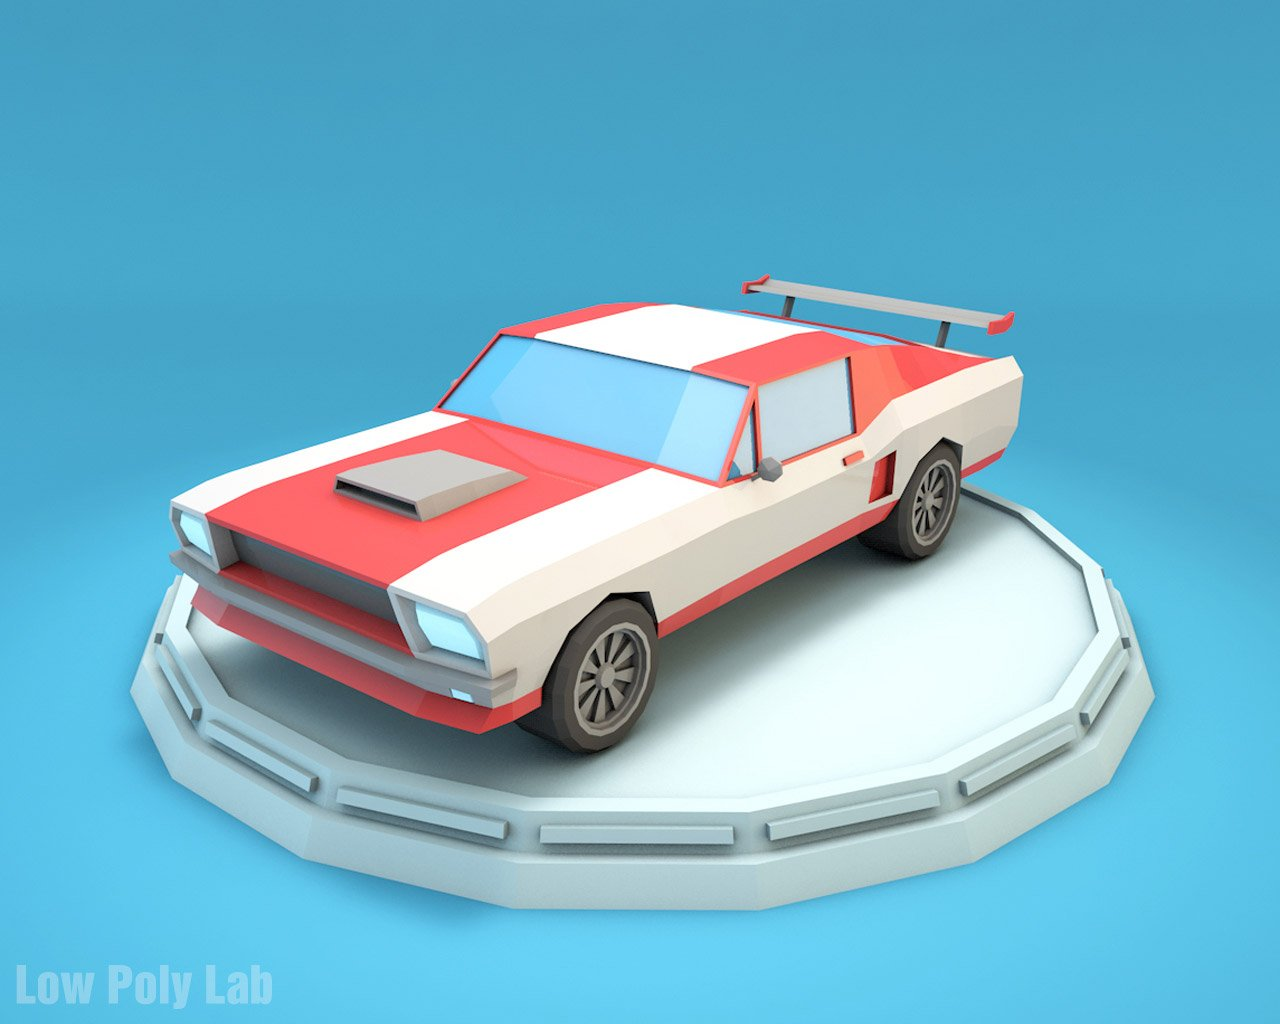 Cartoon car low poly 3d model in racing 3dexport malvernweather Image collections